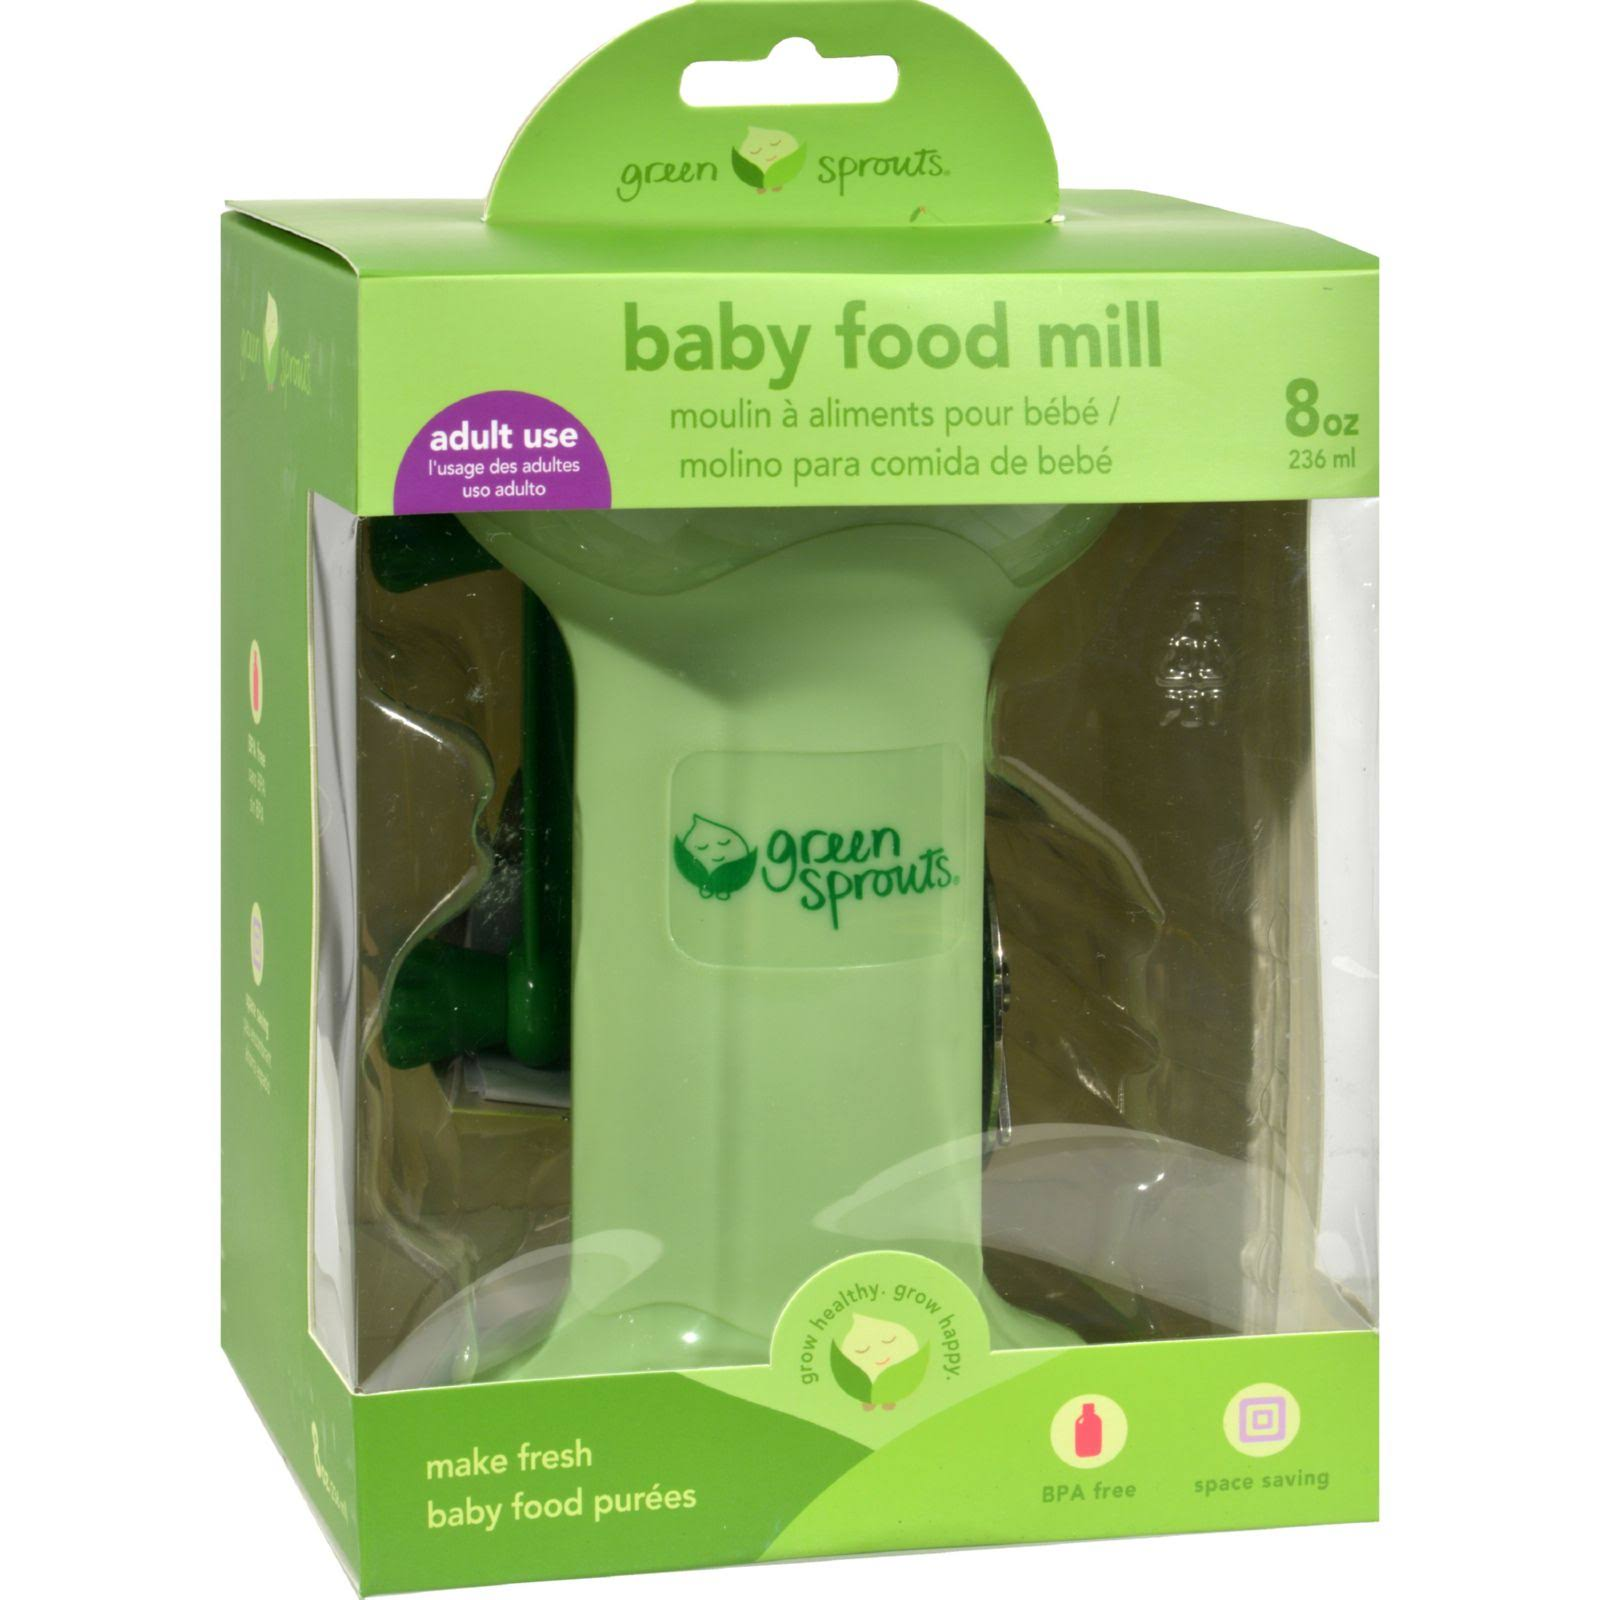 Green Sprouts Baby Food Mill - Green